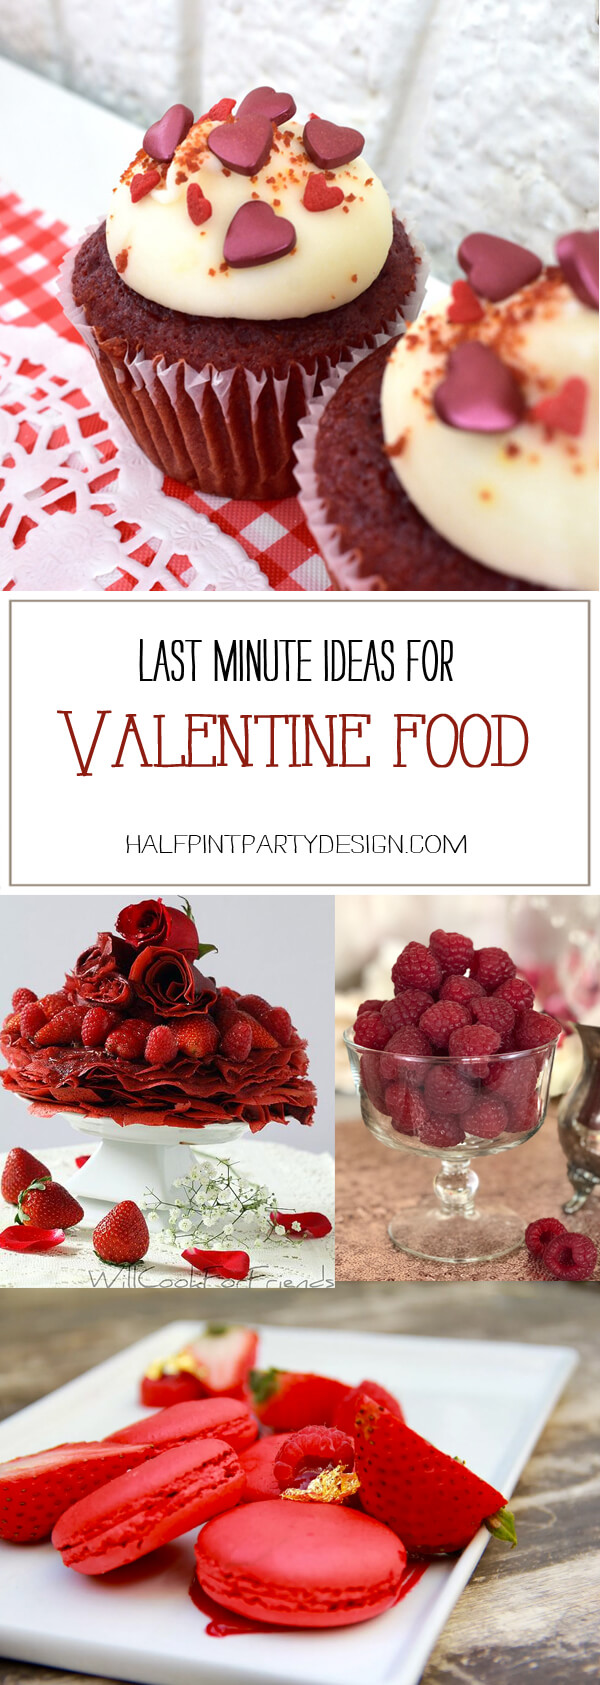 Last minute valentines party food ideas halfpint party for Last minute party ideas